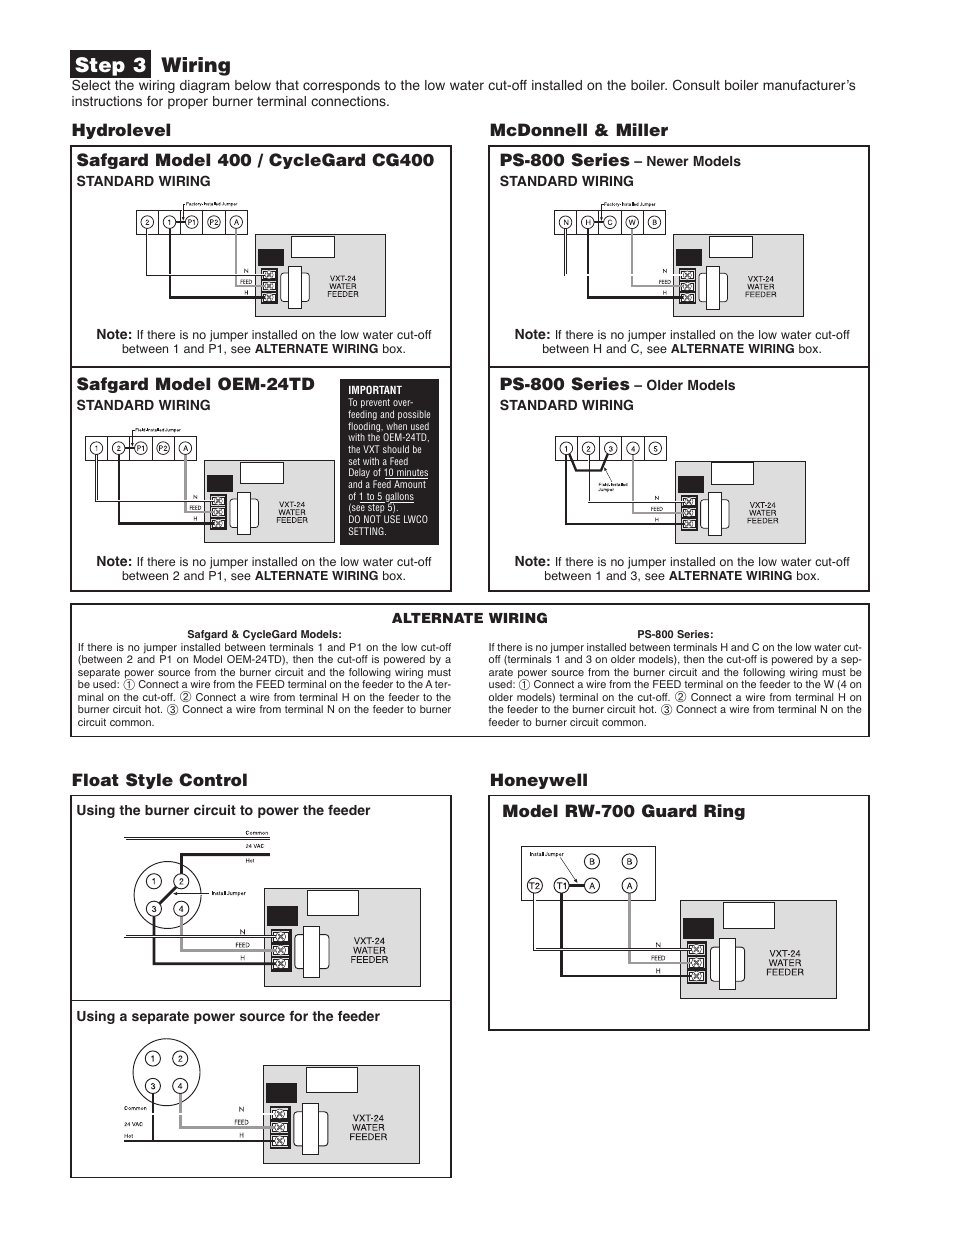 step 3 wiring mcdonnell miller ps 800 series hydrolevel vxt 24 rh manualsdir com low water cut off wiring diagram model 400 Heater Thermostat Wiring Diagram